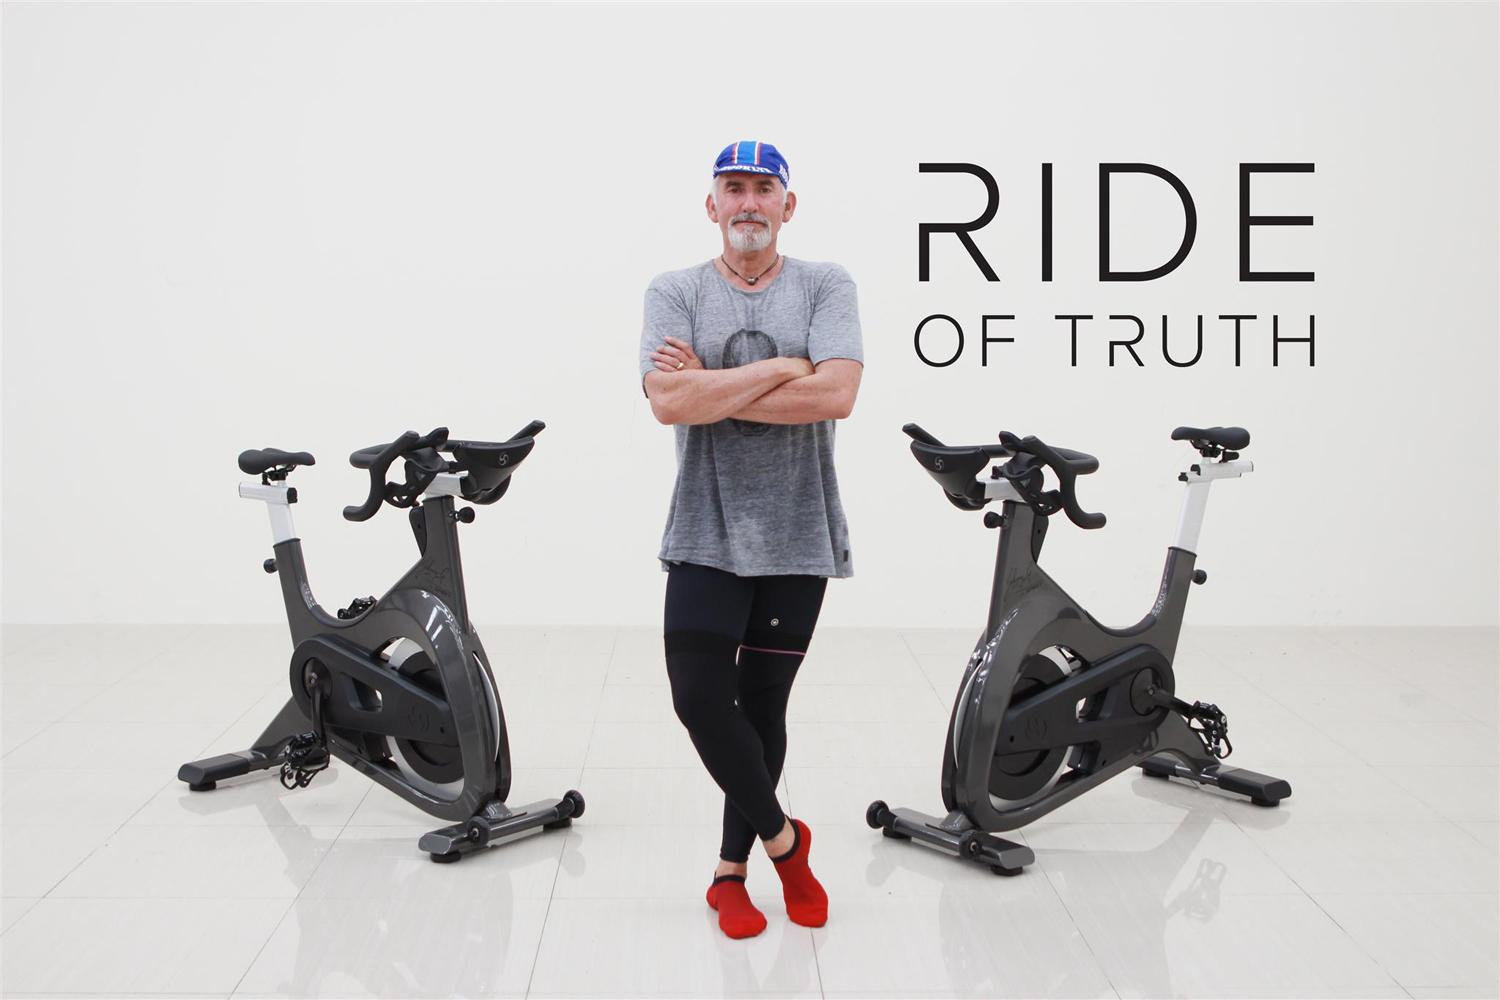 Ride of Truth offers riders the opportunity to attend a five-hour event encompassing lectures, workshops and participation in various cycling training methodologies